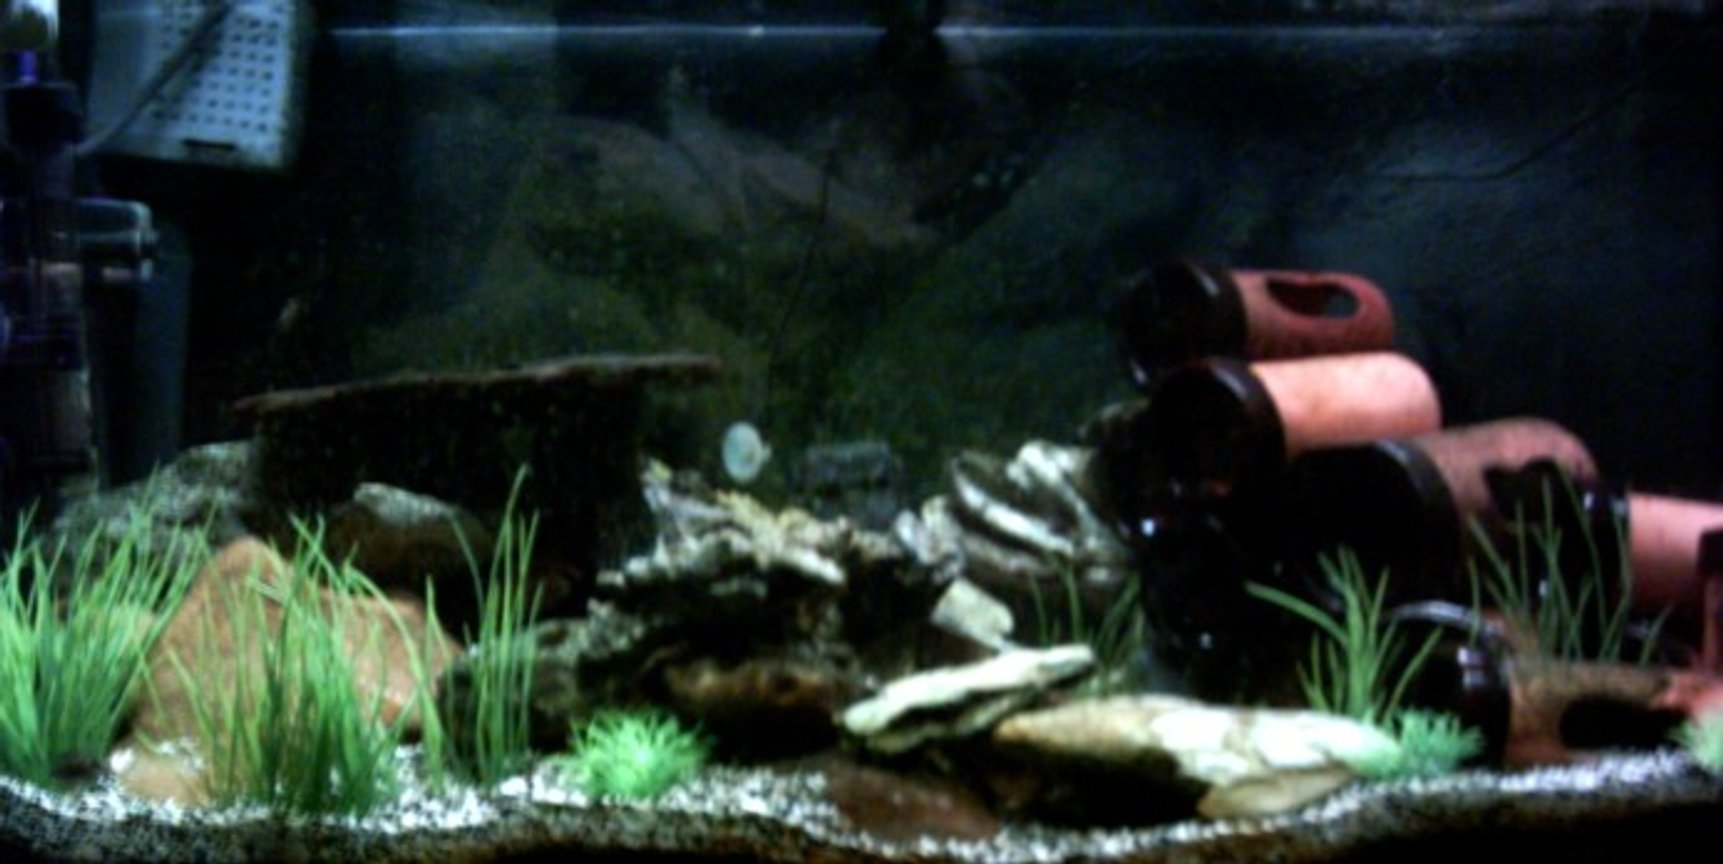 96 gallons freshwater fish tank (mostly fish and non-living decorations) - Tanganyka tank......... Tropheus Moorii 7x Alto Calvus Featherfin Synodontis Pleco 2x half banded barbs Crushed coral and black sand, ceramic pipes, plastic plants, slate and plastic rocks. AR-850.